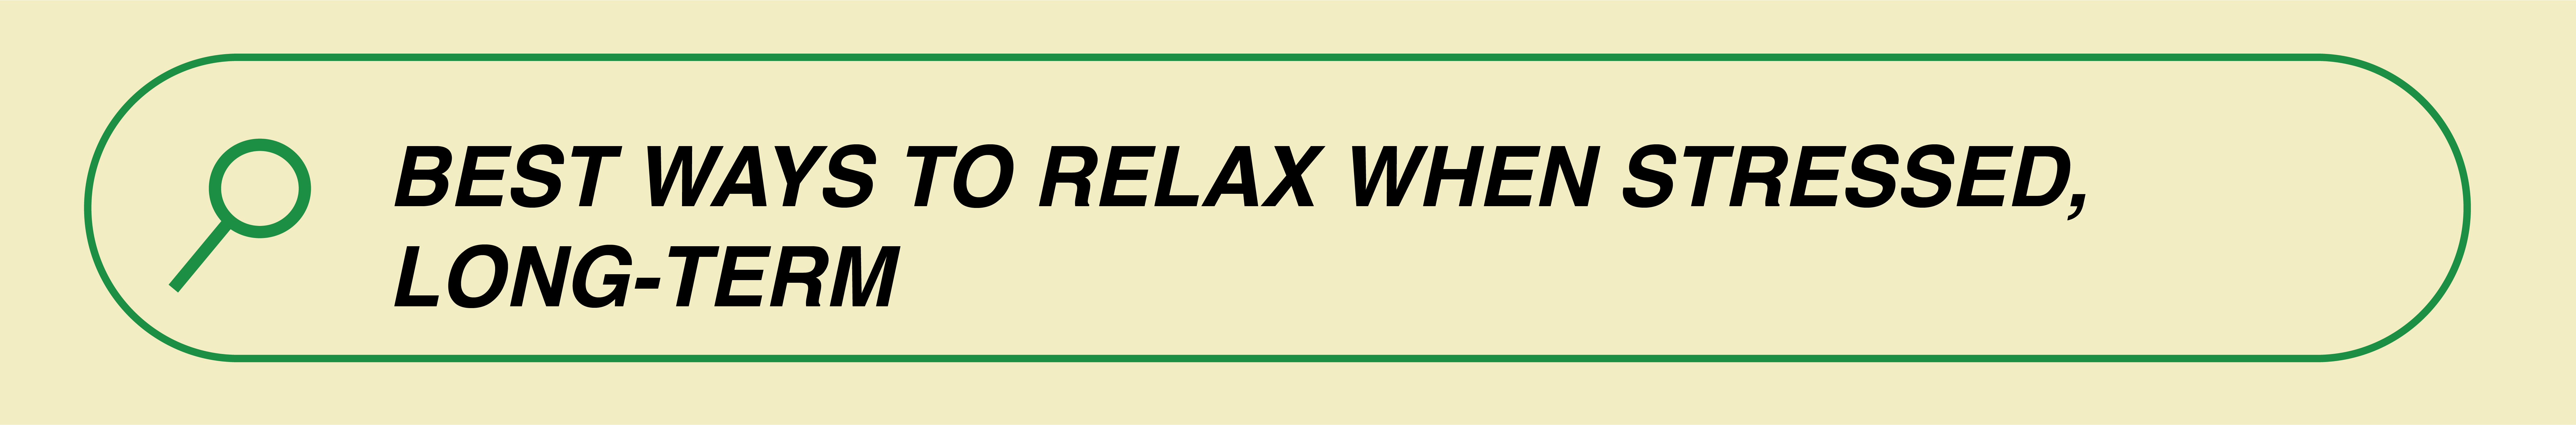 best ways to relax when stressed, long-term